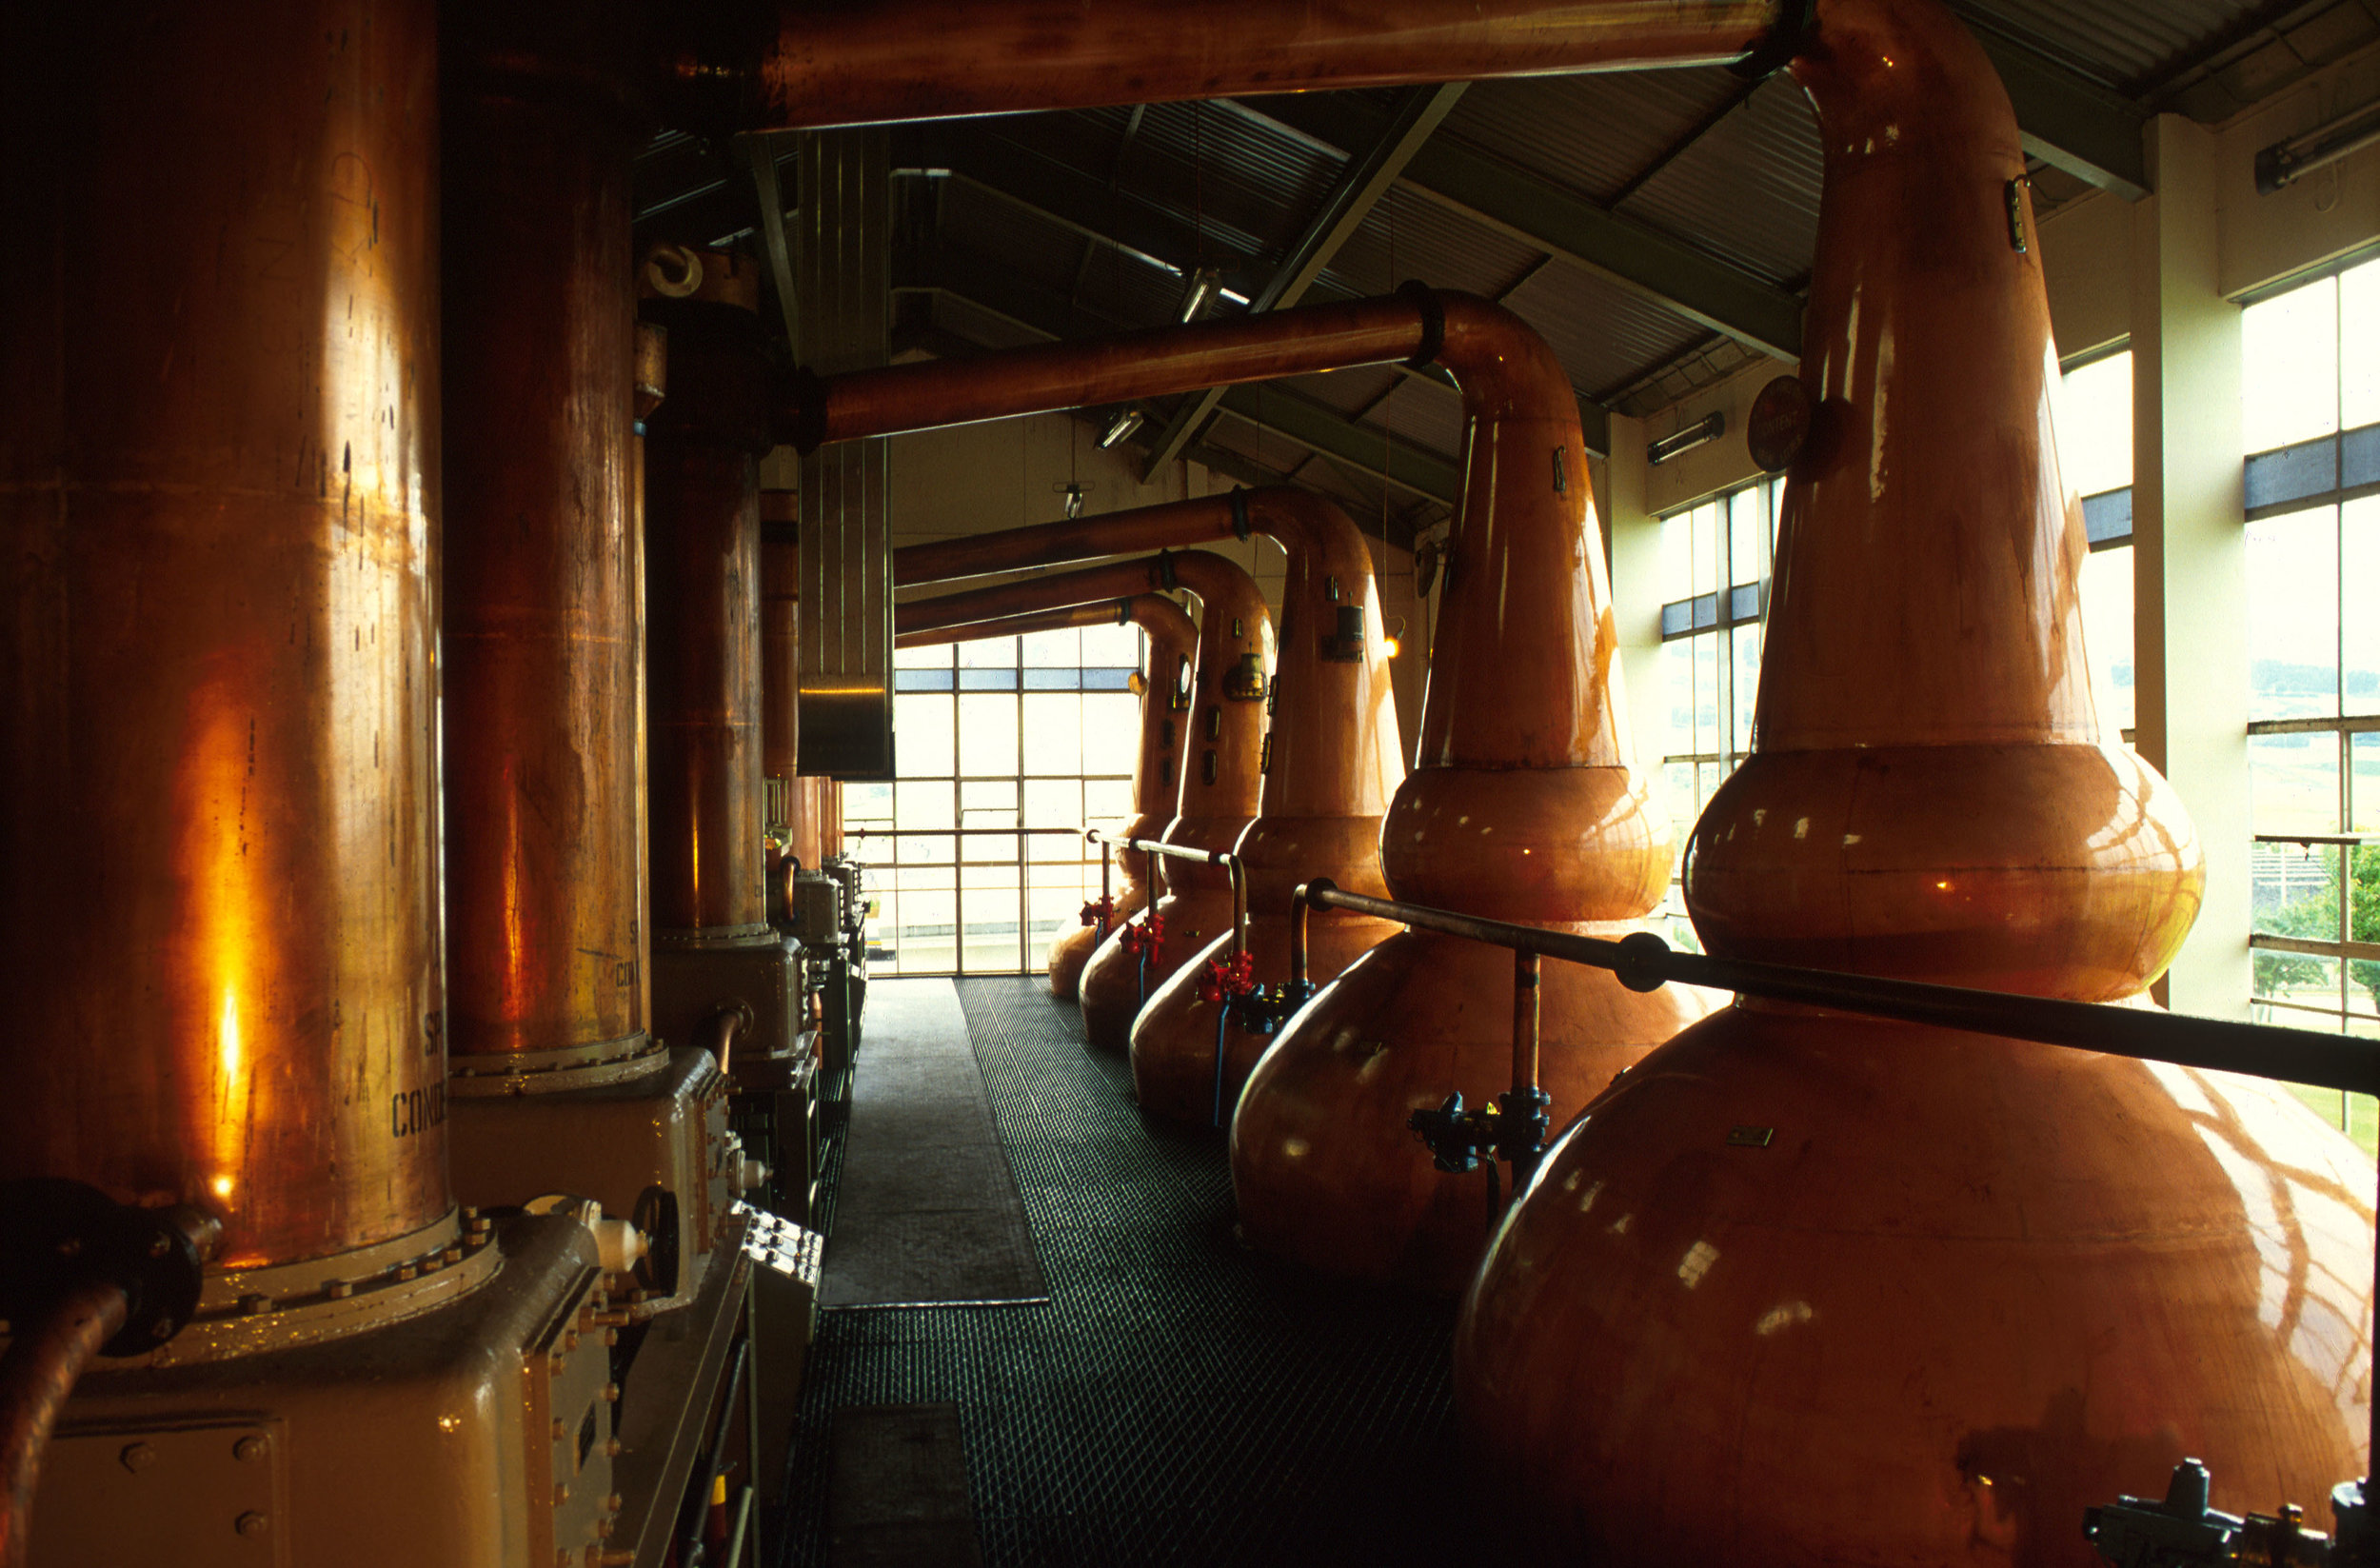 The copper vats of the clynelish distillery to be found east of Brora, Sutherland